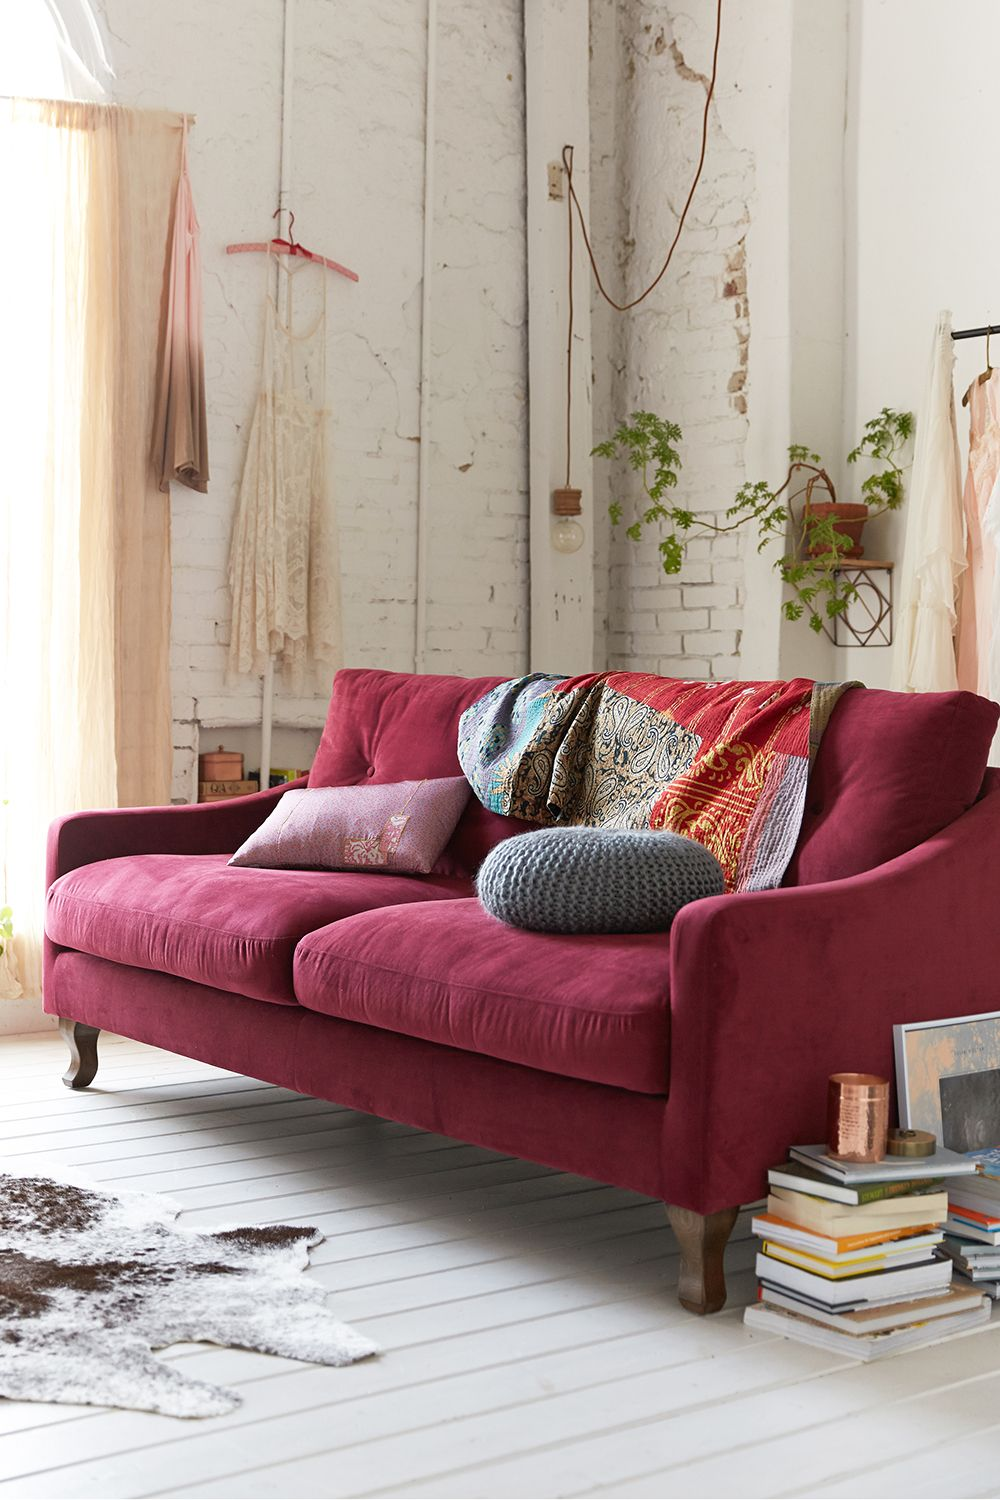 Apartment Urban Outfitters Home Living Room Home Decor Home Decor Accessories #red #accessories #for #living #room